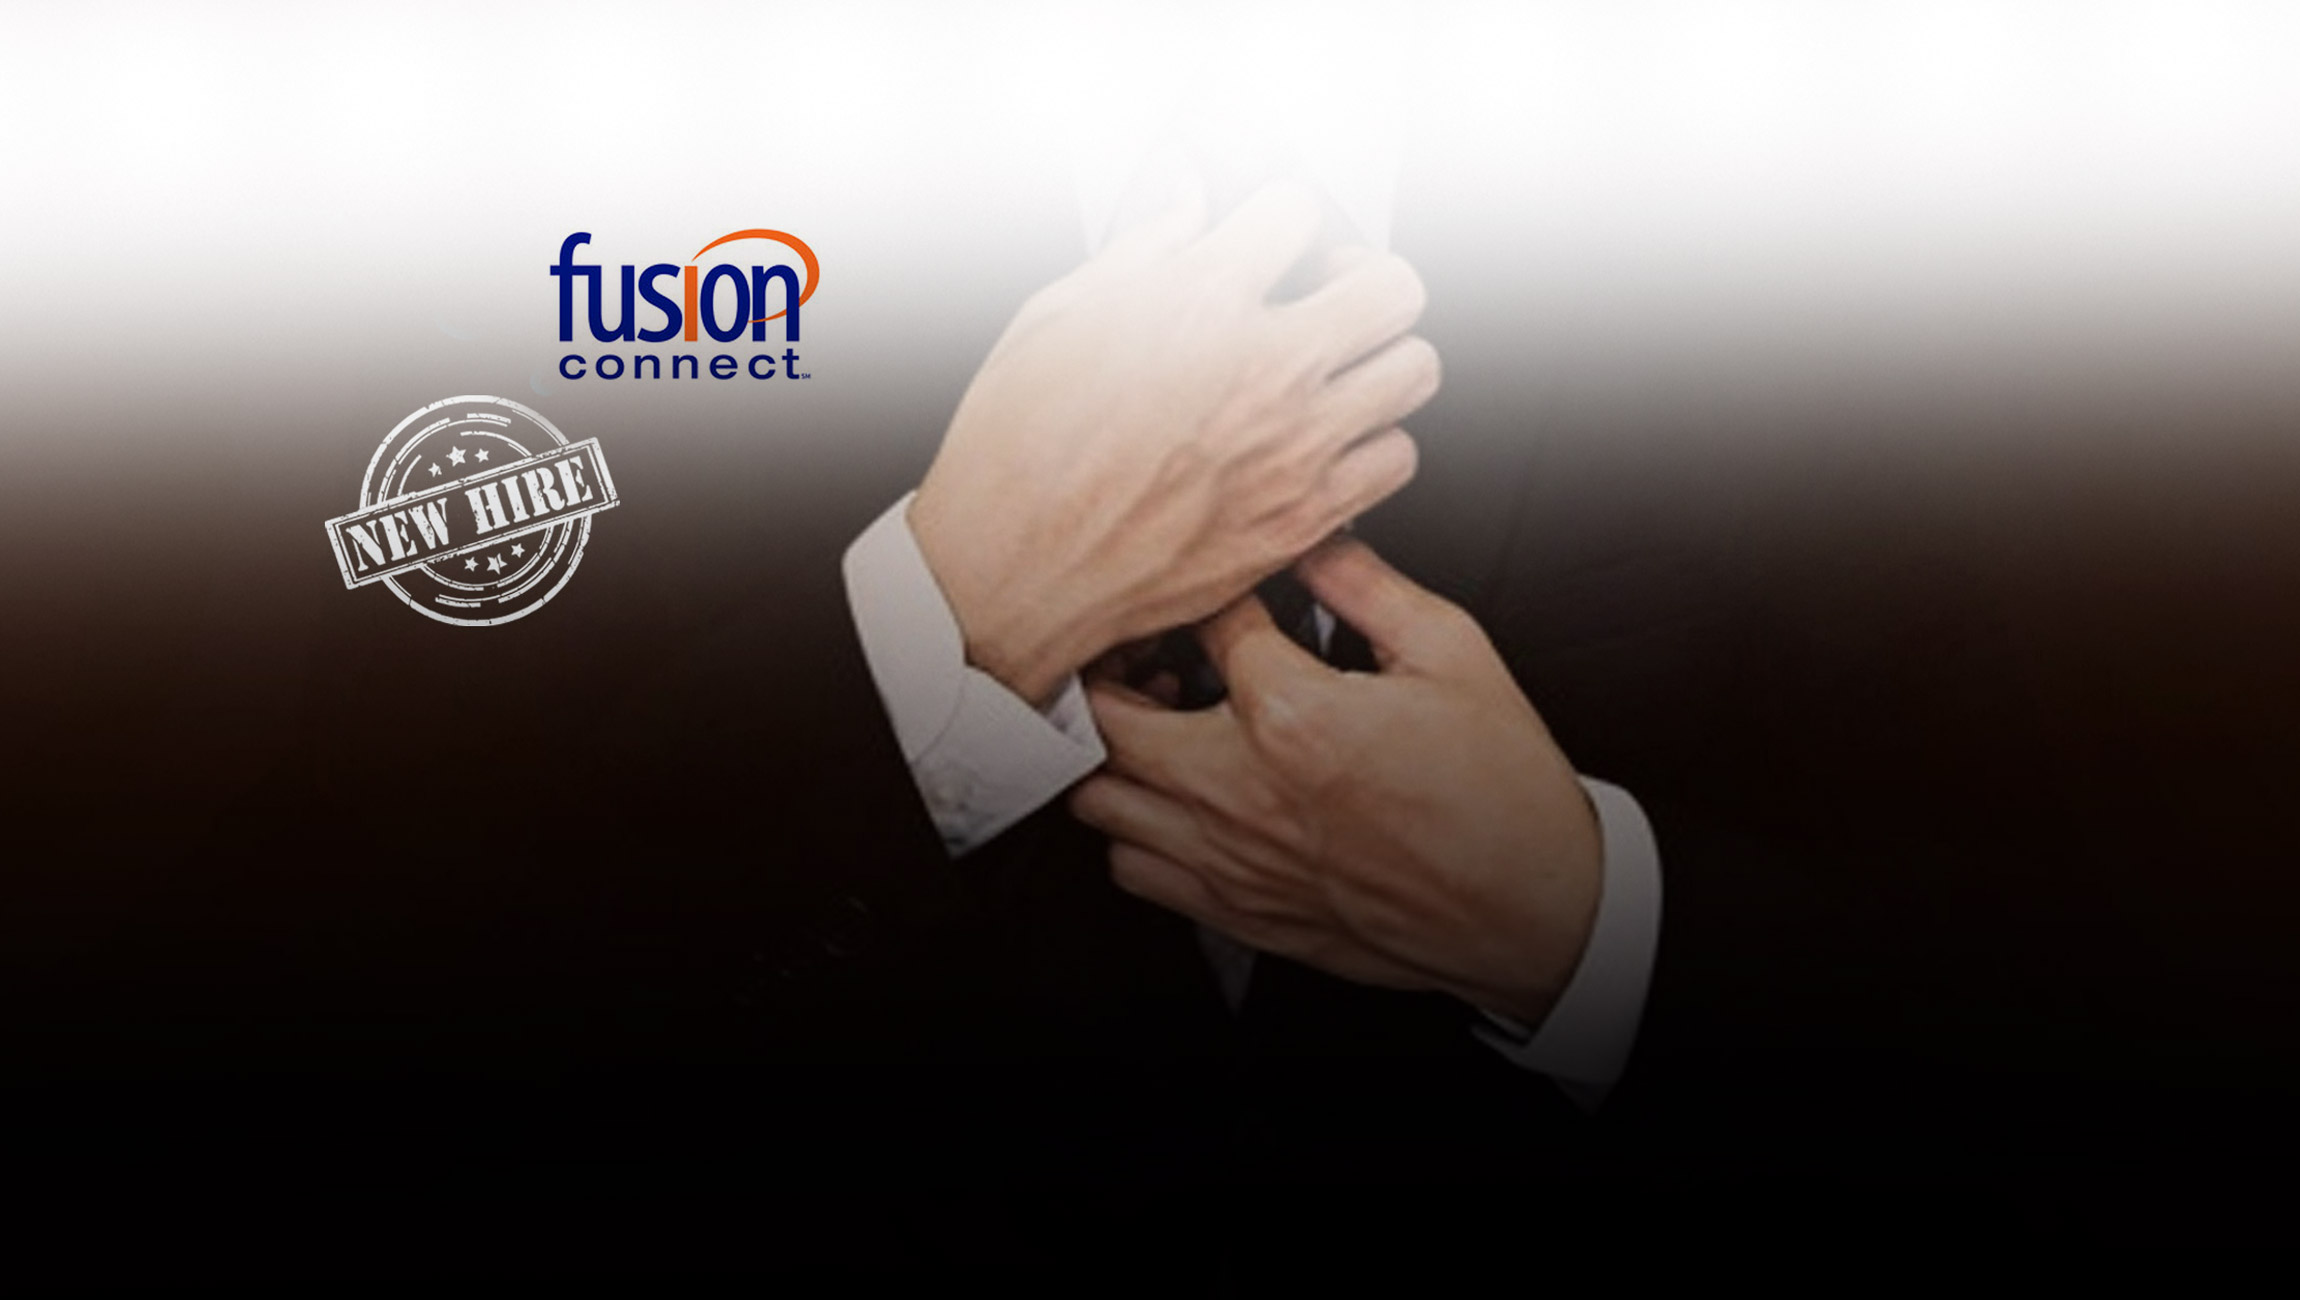 Fusion Connect Completes the Transformation of its C-Suite - Adds Michael Miller as Chief Information Officer